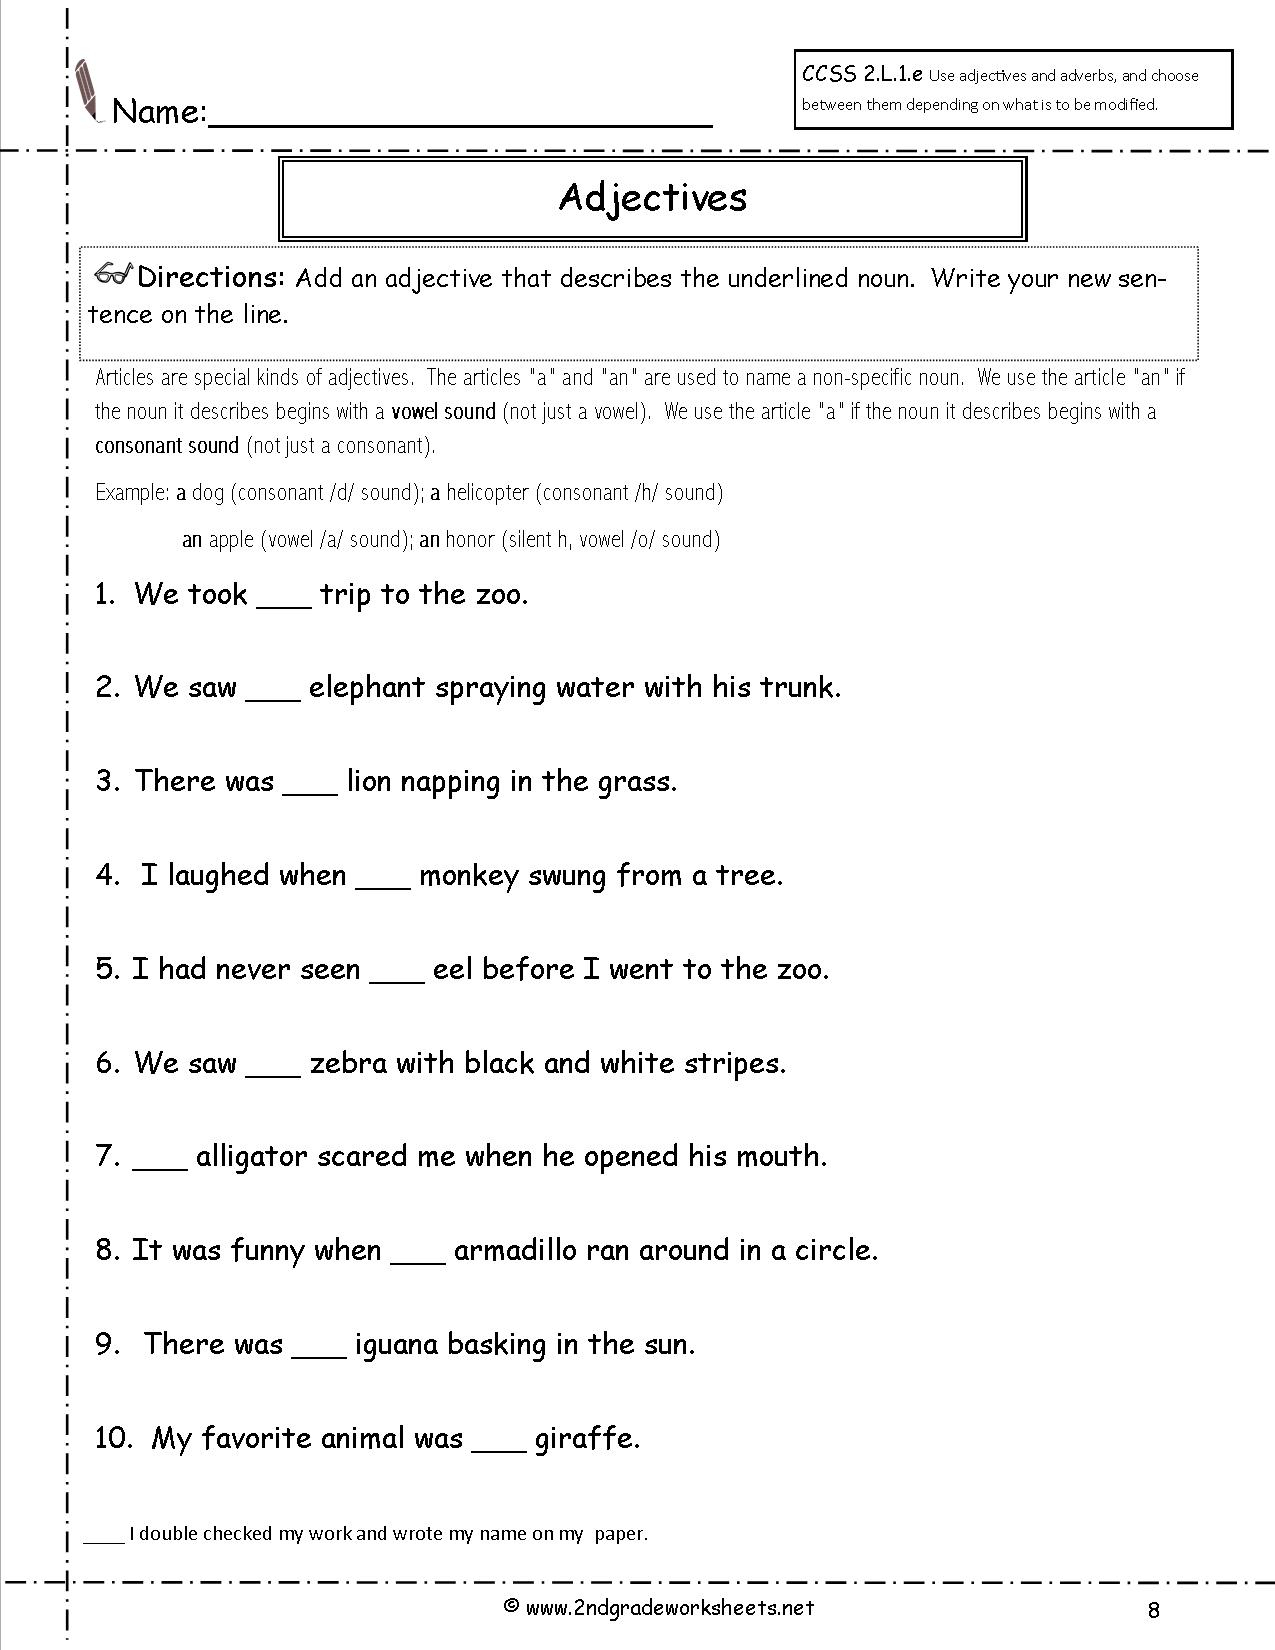 Free Language/grammar Worksheets And Printouts | Year 10 English Worksheets Printable